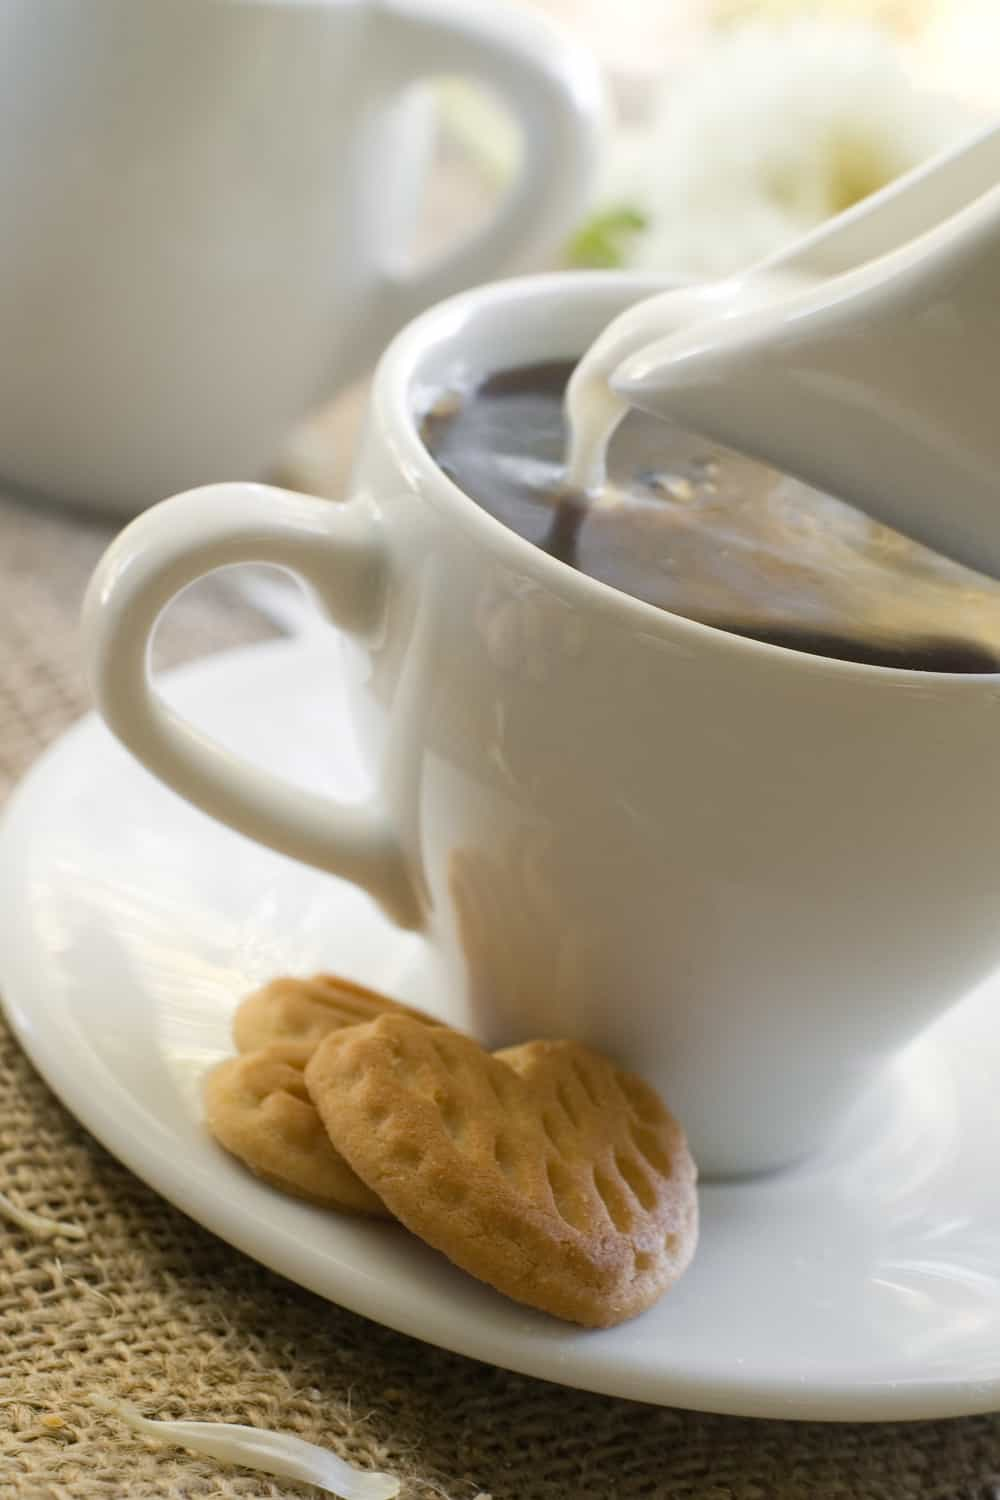 What are liquid coffee creamers made from